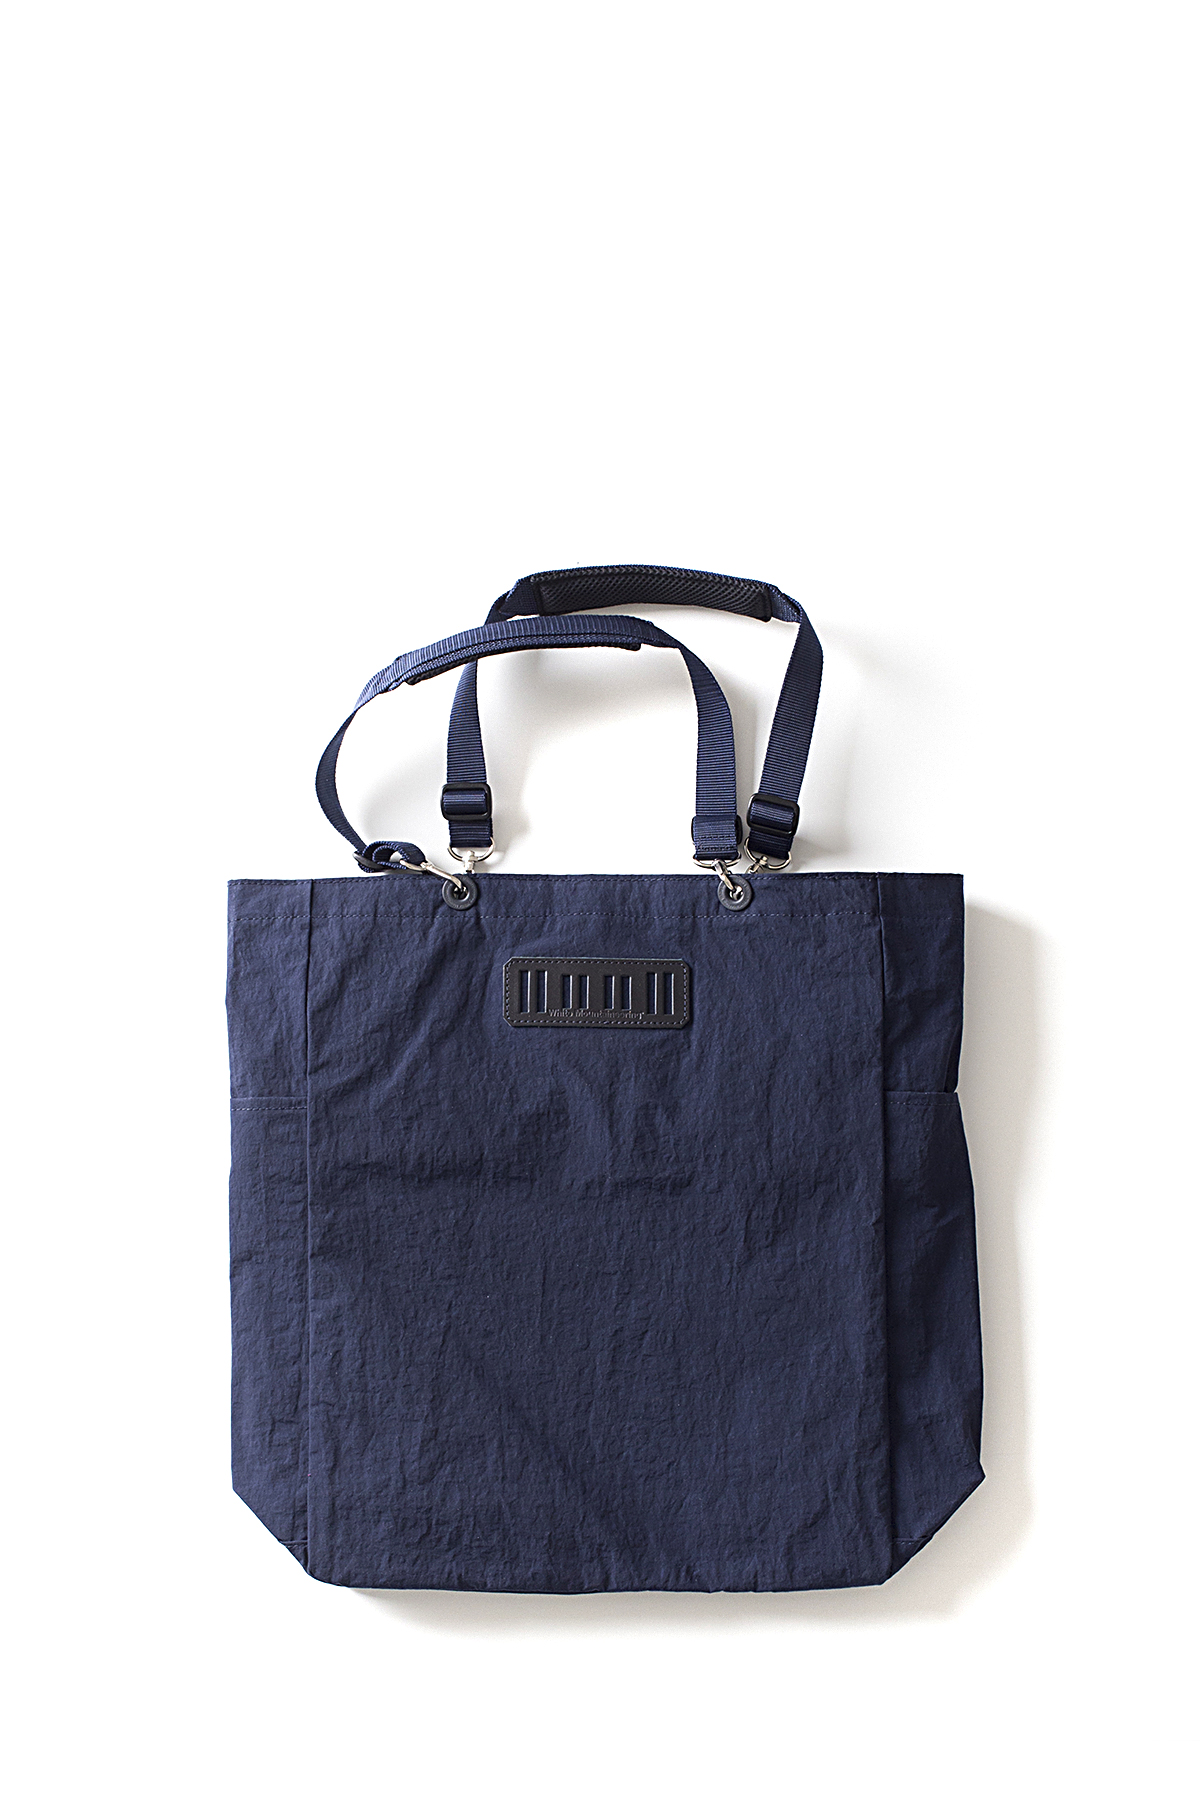 WHITE MOUNTAINEERING : Tote Bag (Navy)